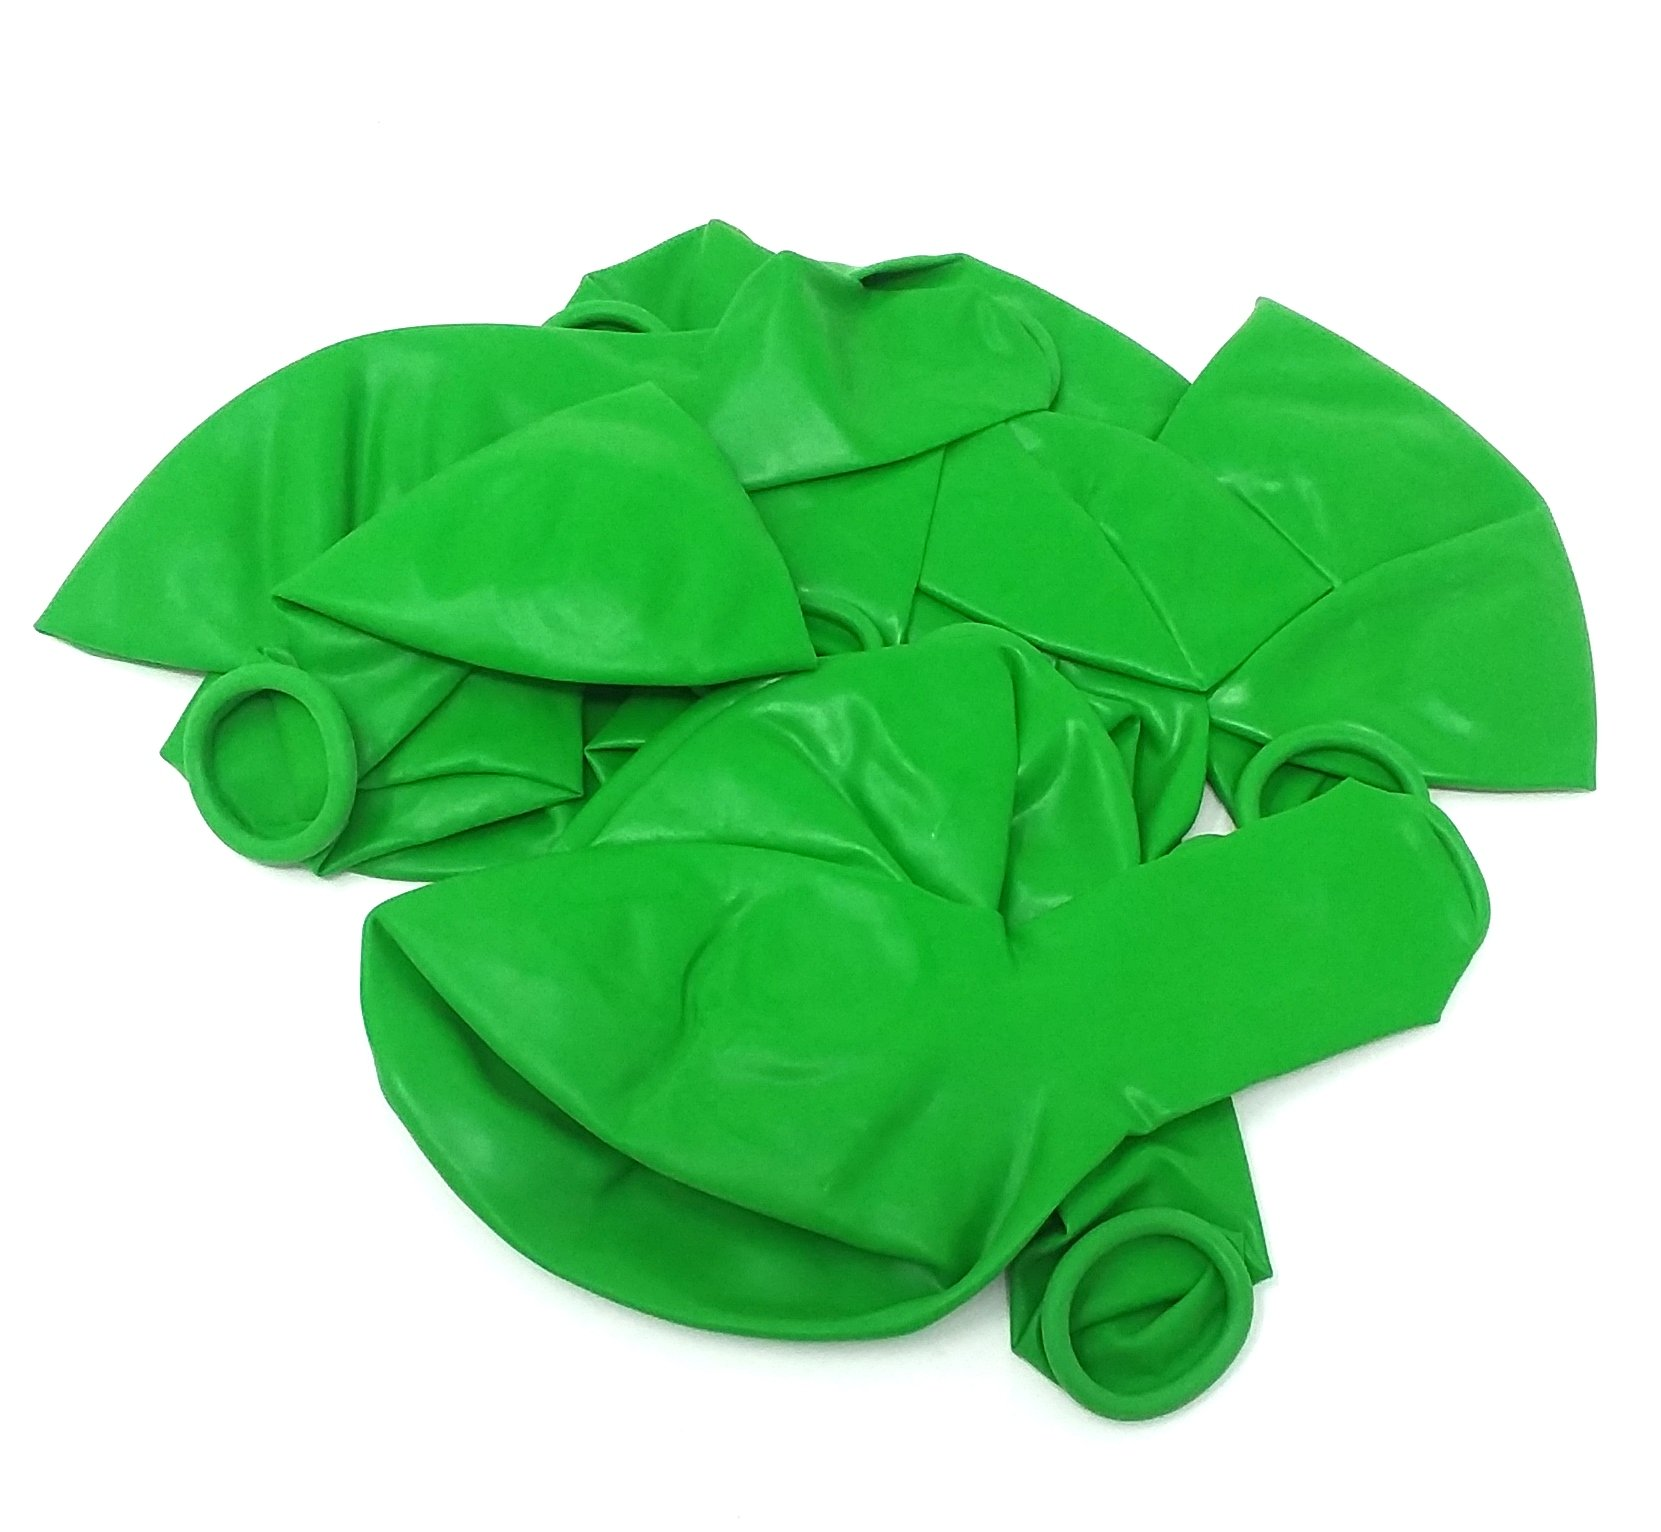 2,000 GREEN 12'' PARTY BALLOONS BULK WHOLESALE LOT by Chachlili